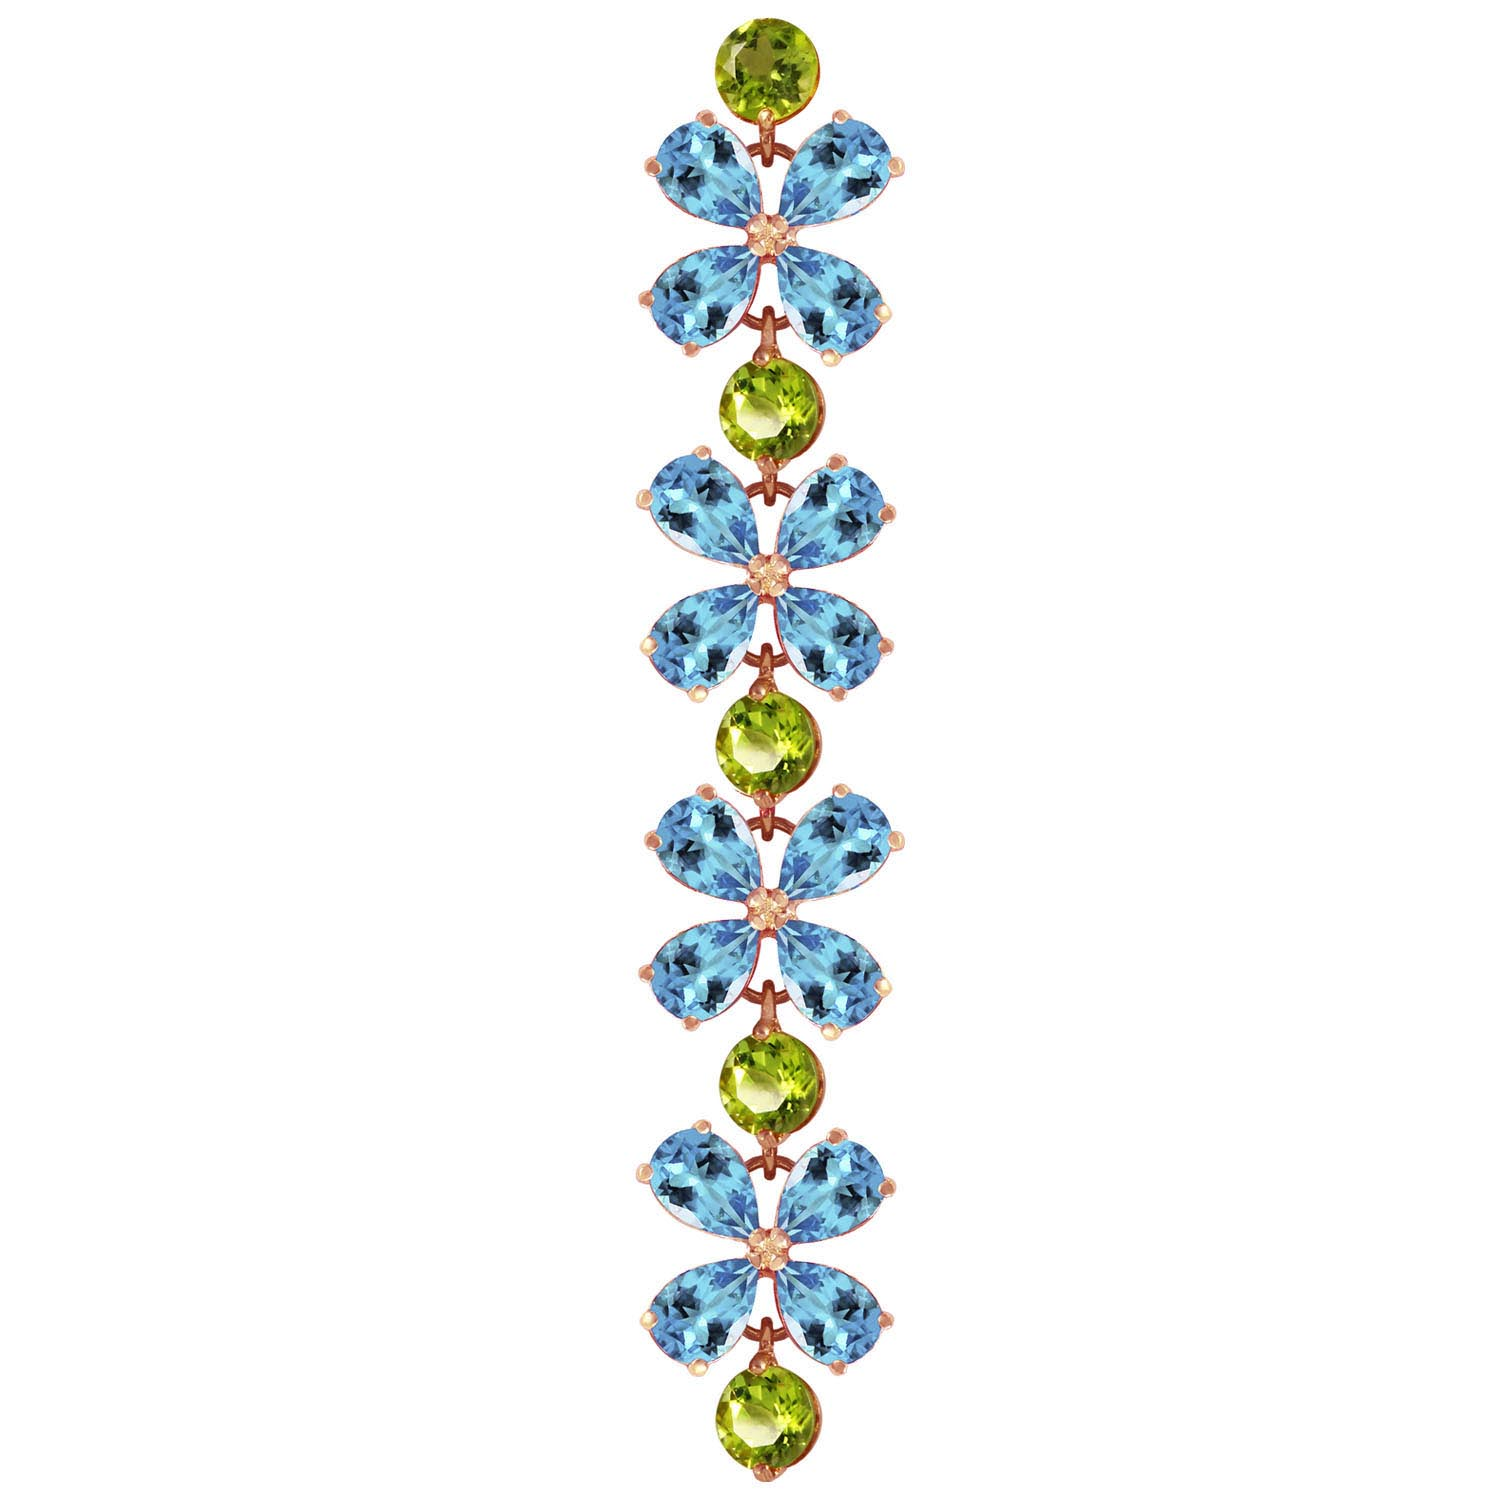 Blue Topaz and Peridot Blossom Bracelet 20.7ctw in 9ct Rose Gold